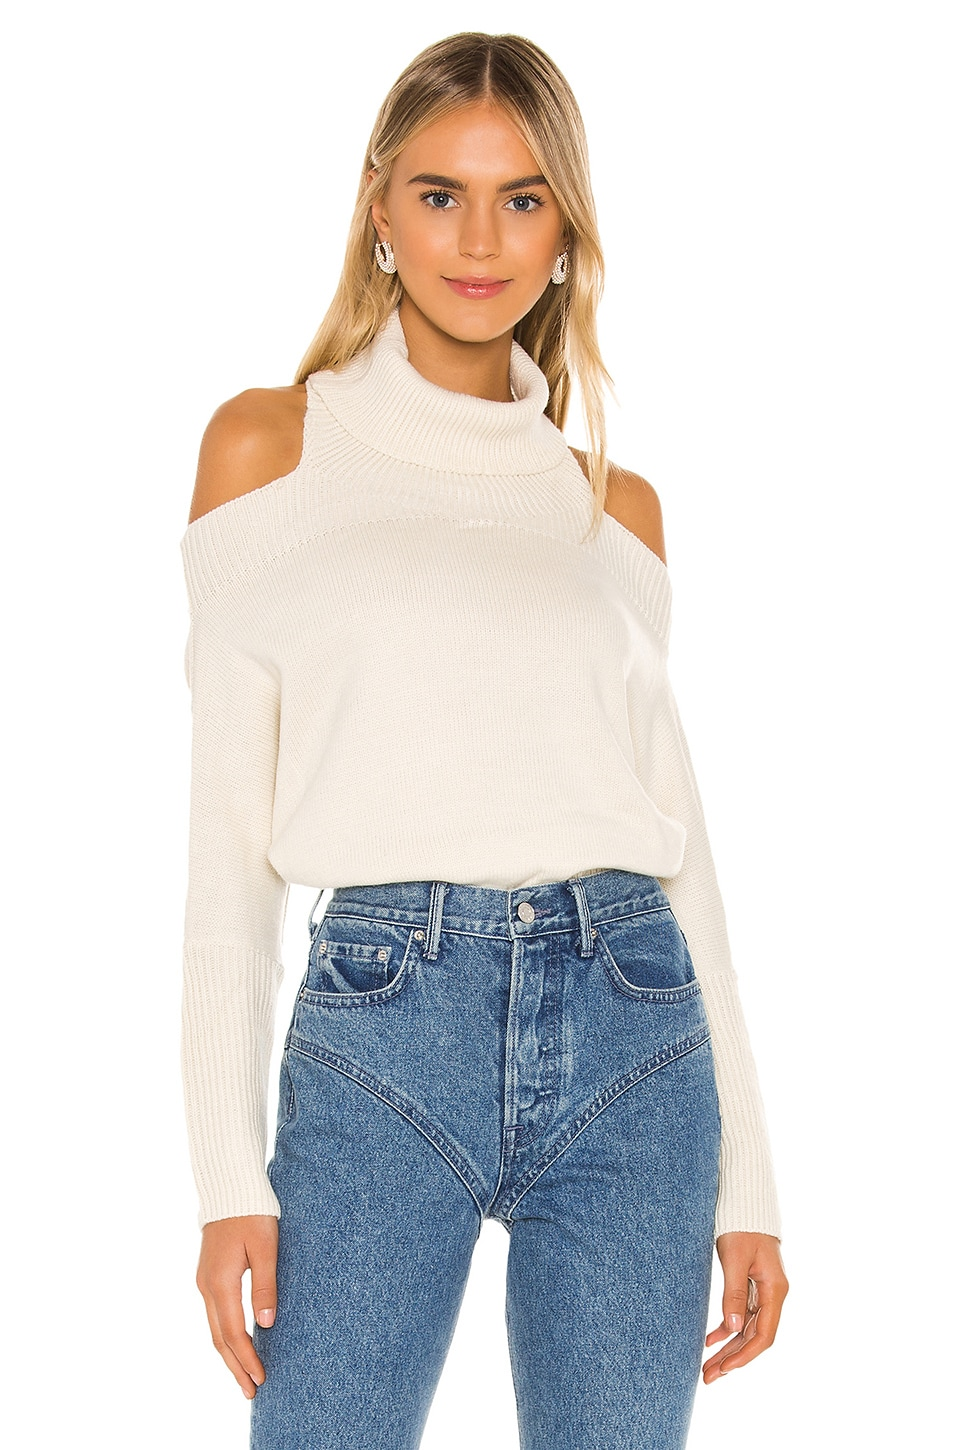 Anisa Turtleneck Sweater                   Lovers + Friends                                                                                                                             CA$ 128.16 7